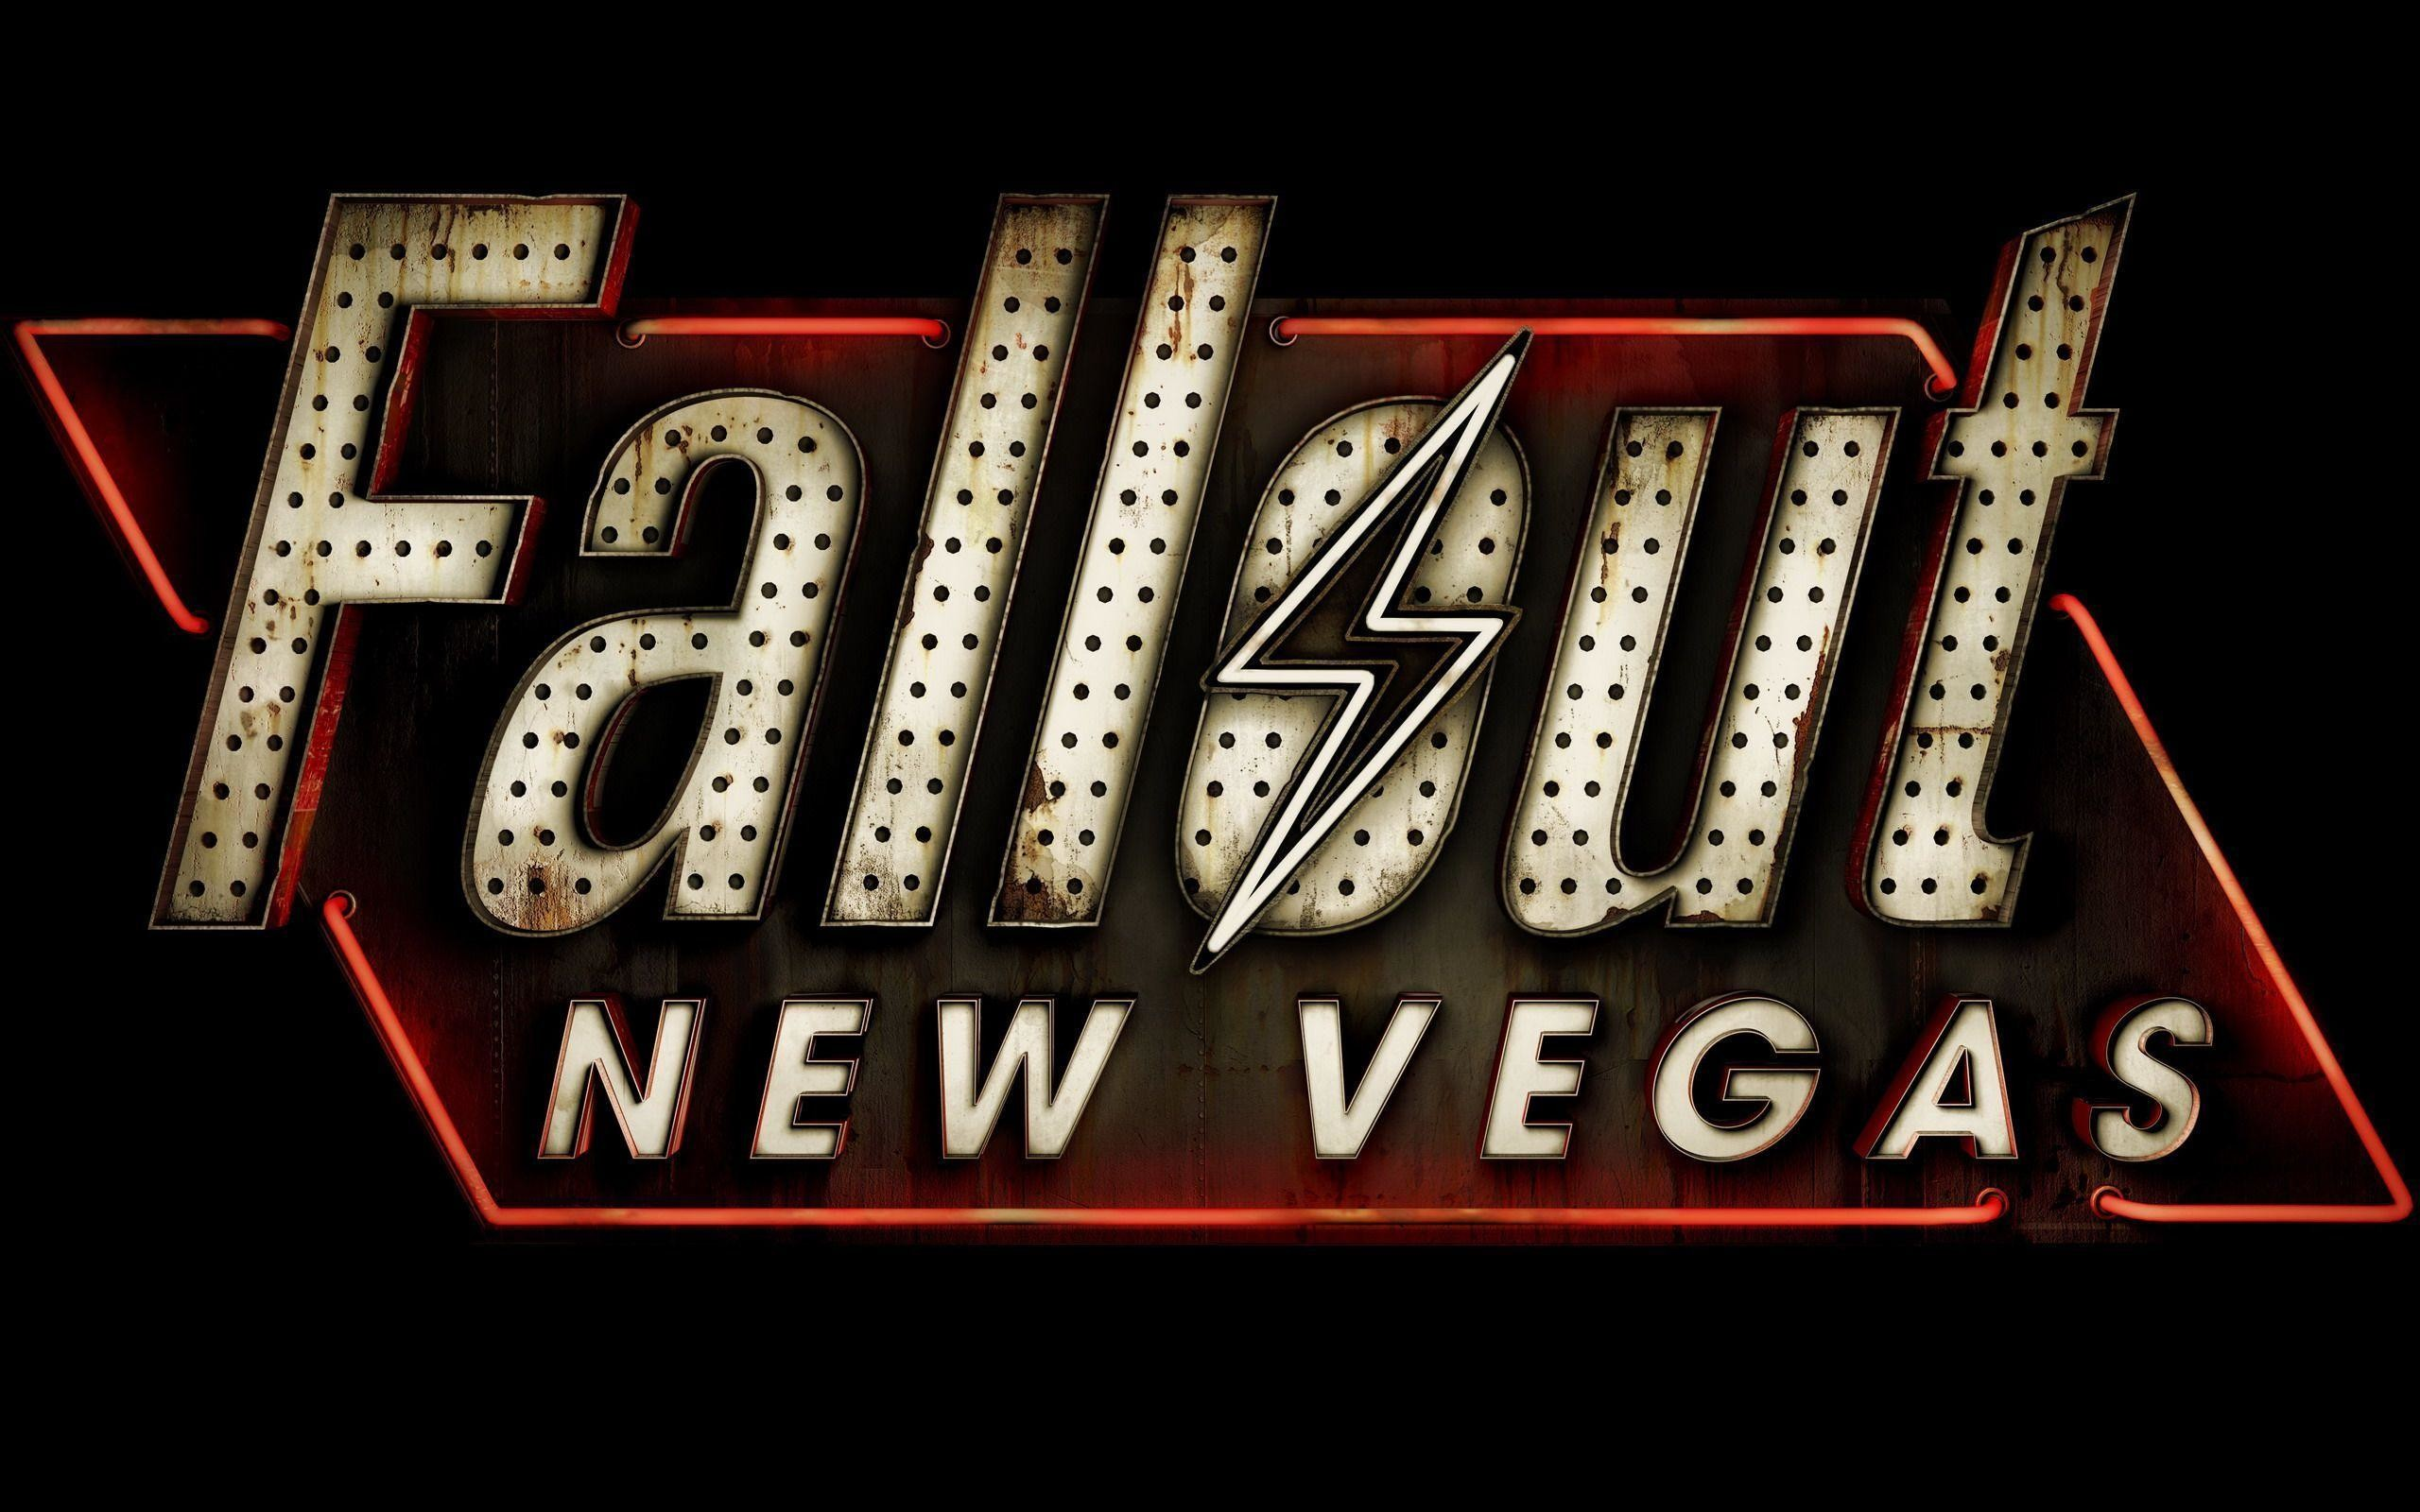 FALLOUT NEW VEGAS RPG HD WALLPAPER ,BACKGROUNDS,HD,IMAGES,SEARCH .